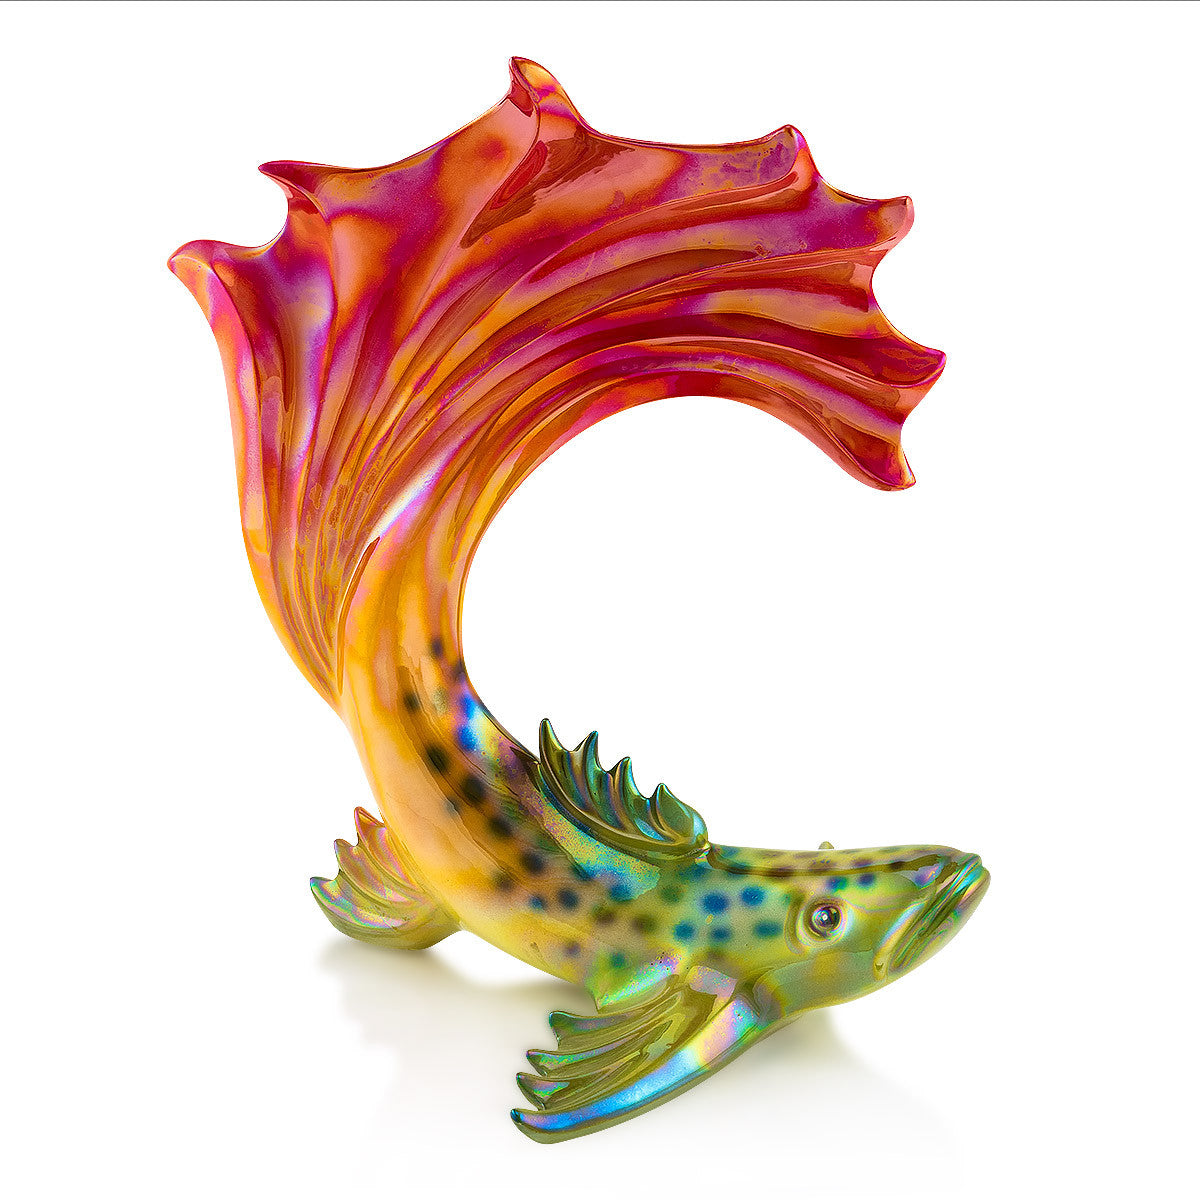 Ceramic tropical fish figurine with vibrant colors – Zanardello srl